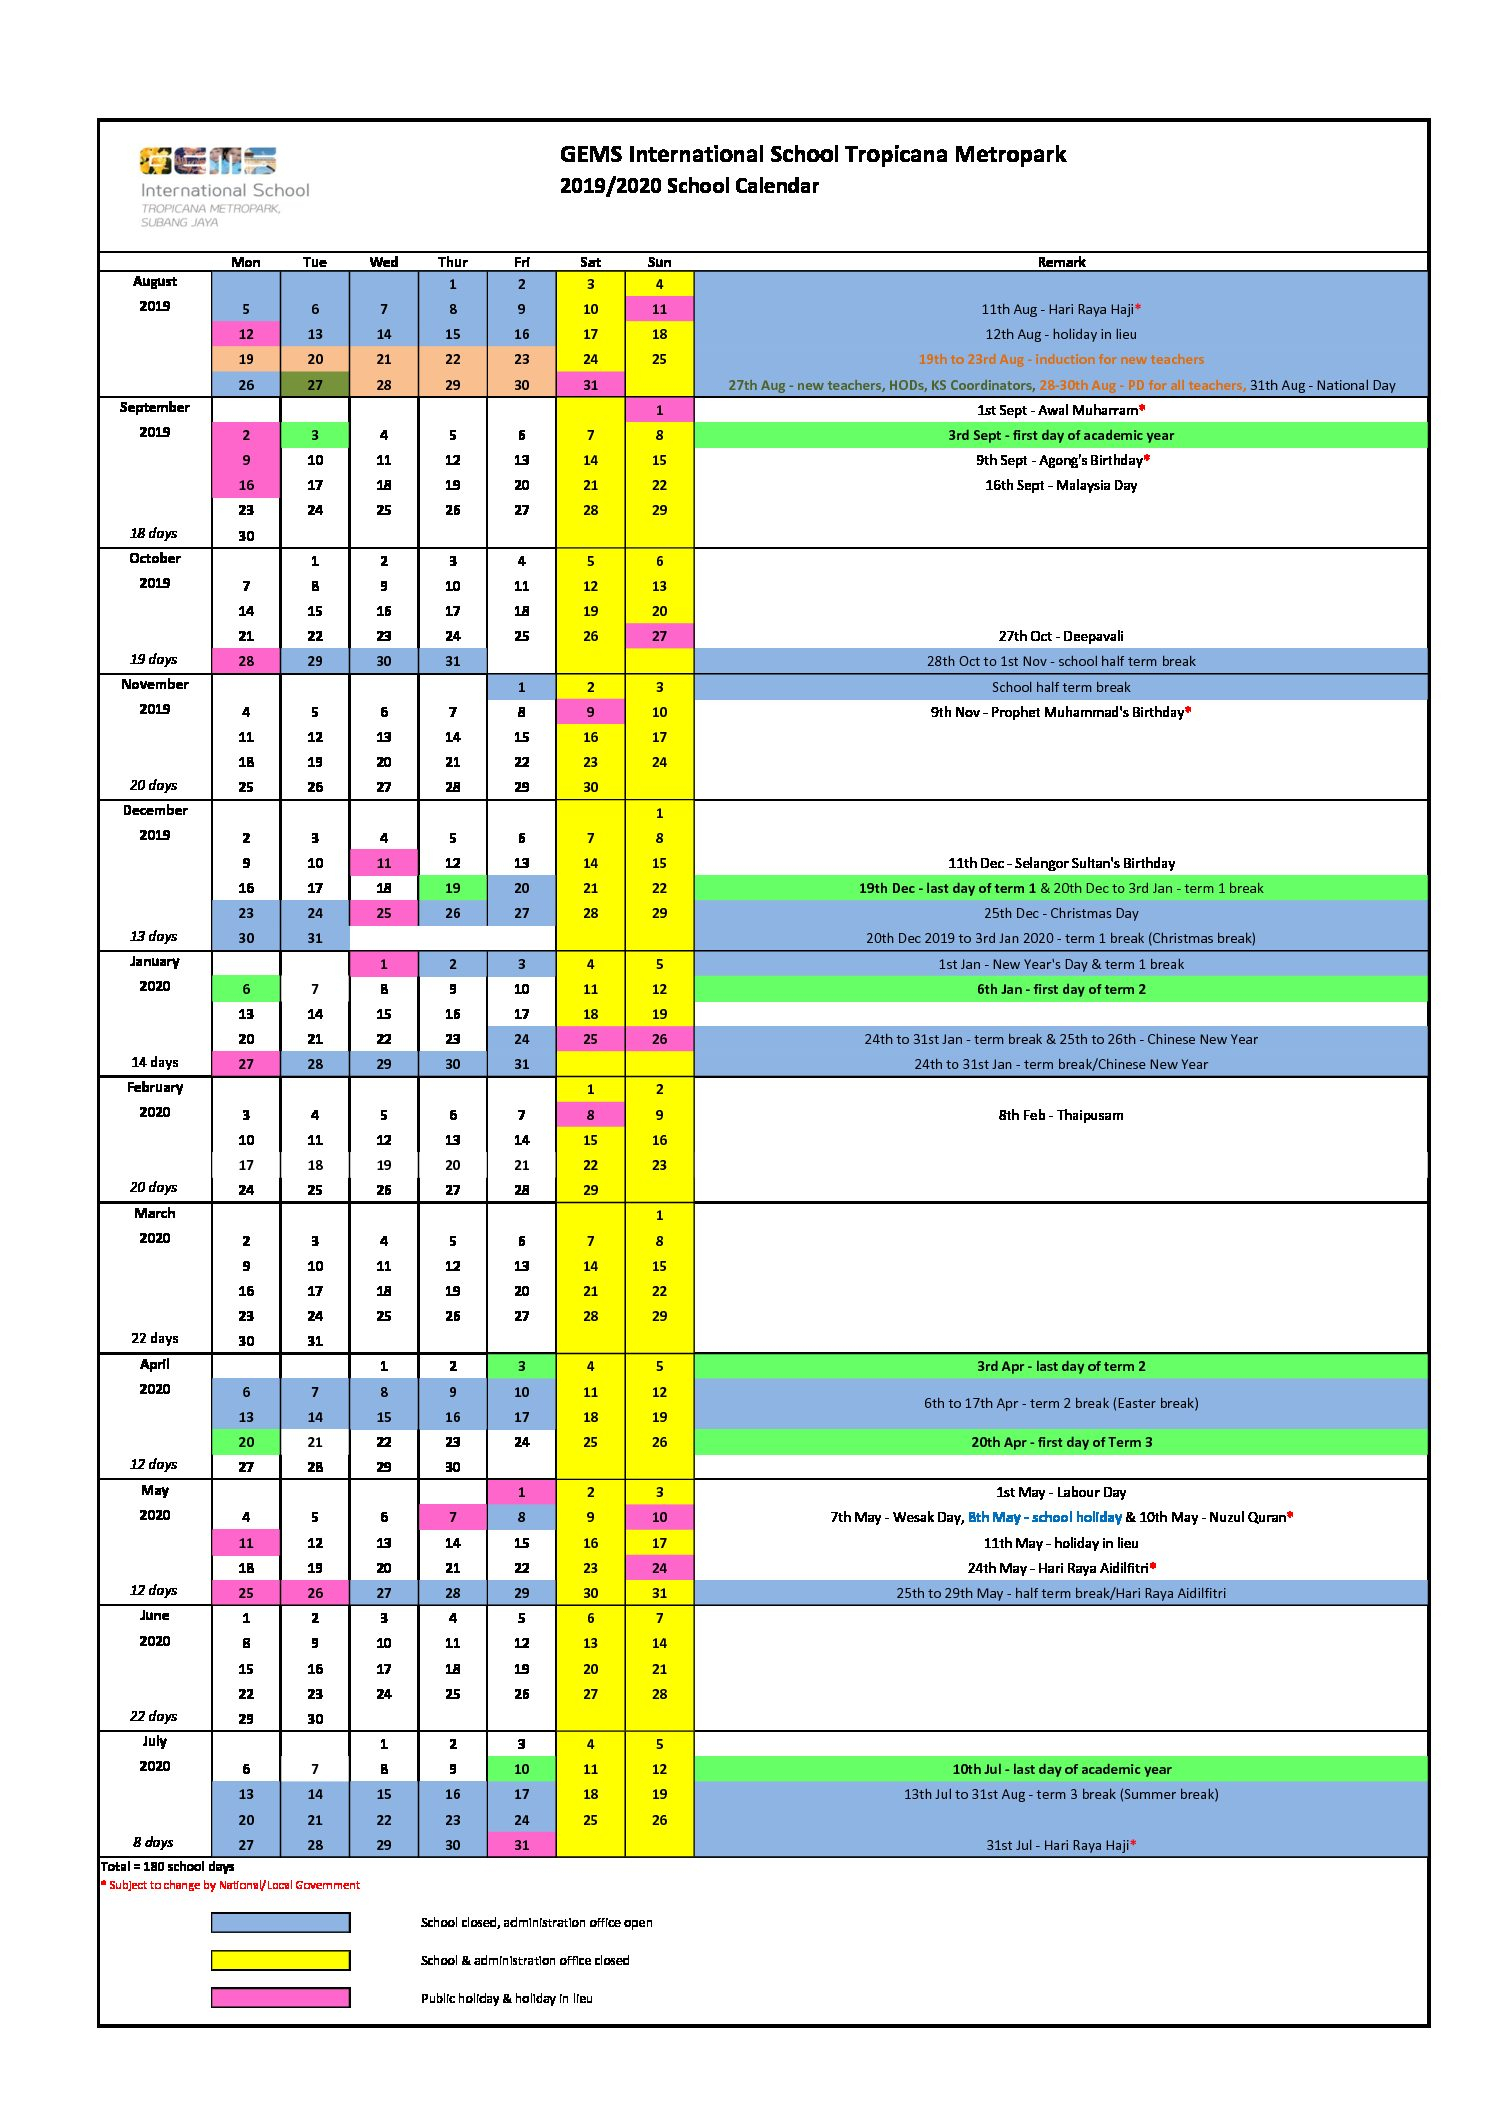 20192020 School Calendar  Gems International School Metropark intended for Pei School Calendar 2020